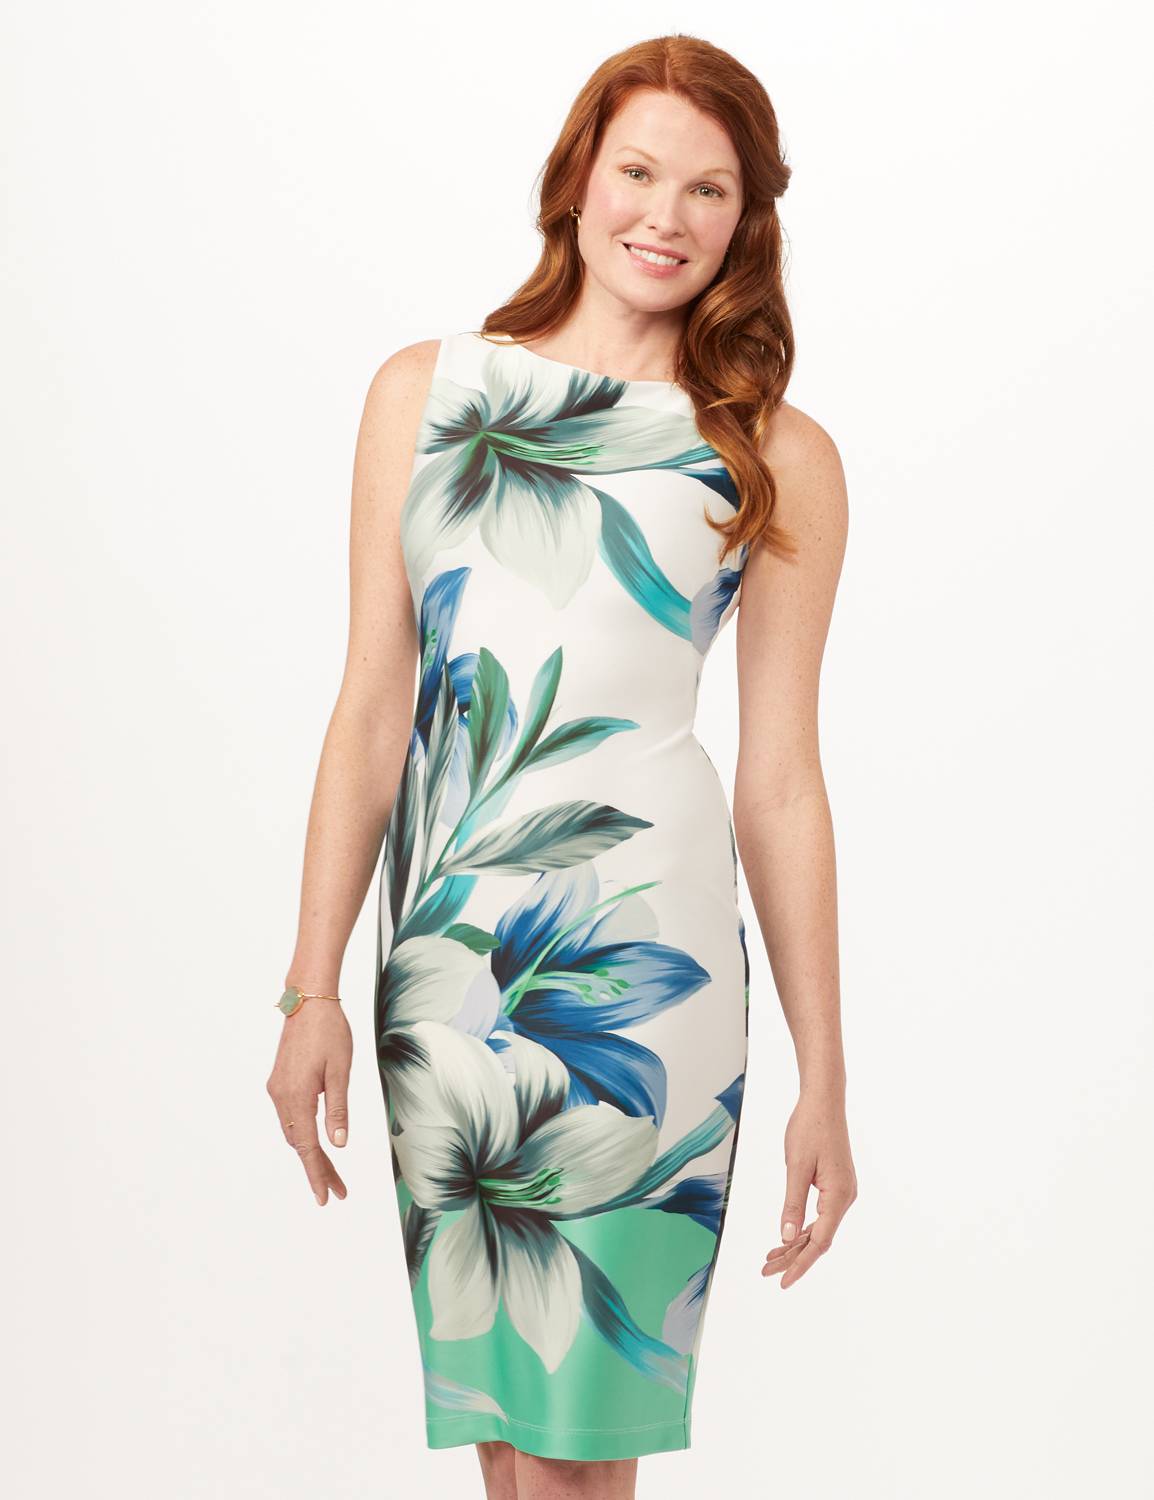 Placed Lily Scuba Sheath Dress - White/Blue/Green - Front